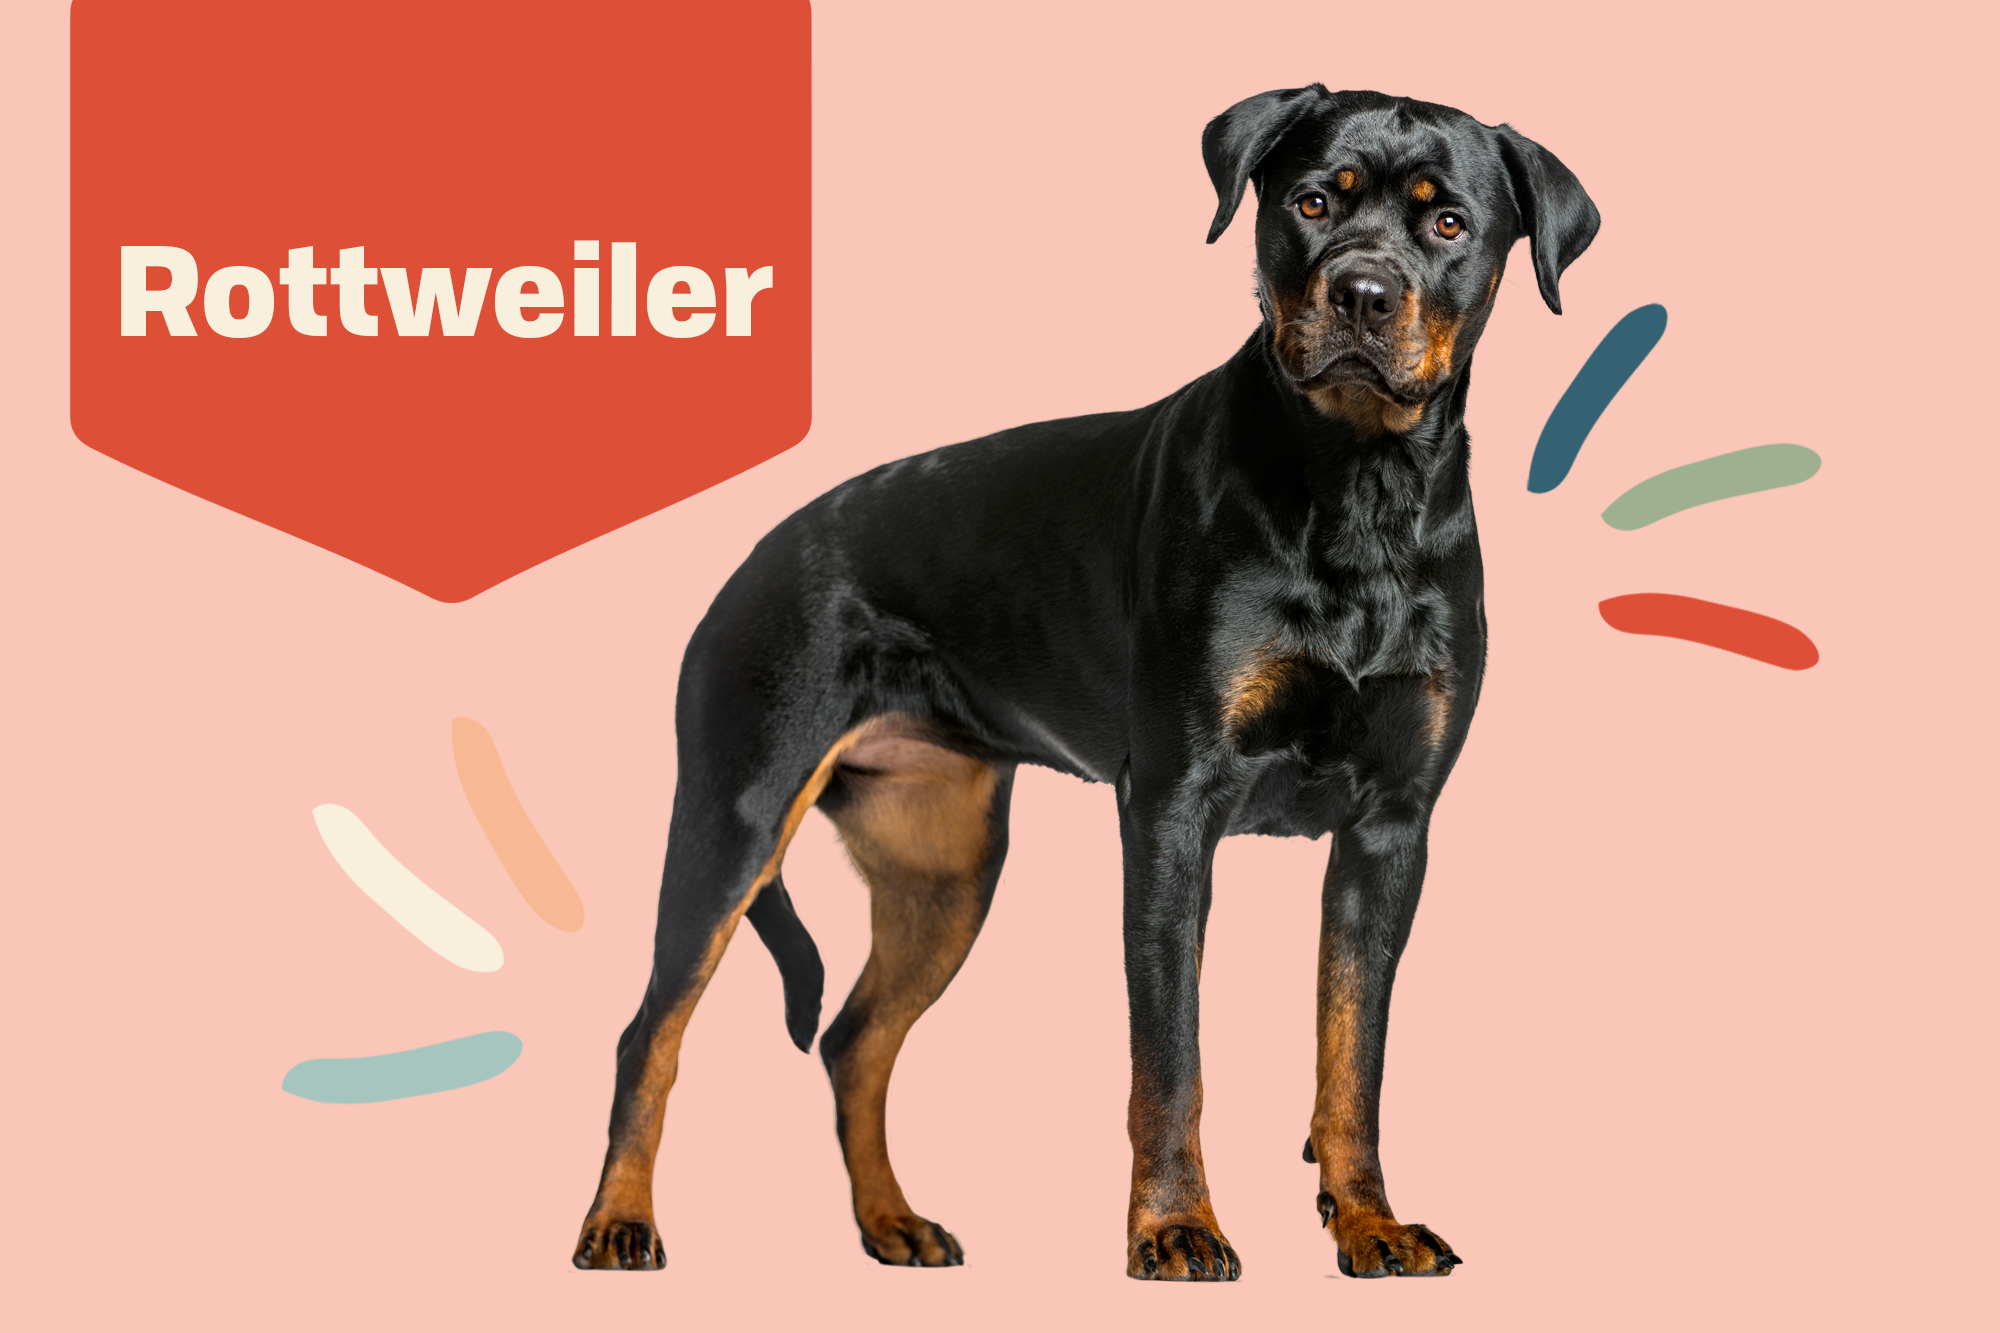 Rottweiler Breed Photo